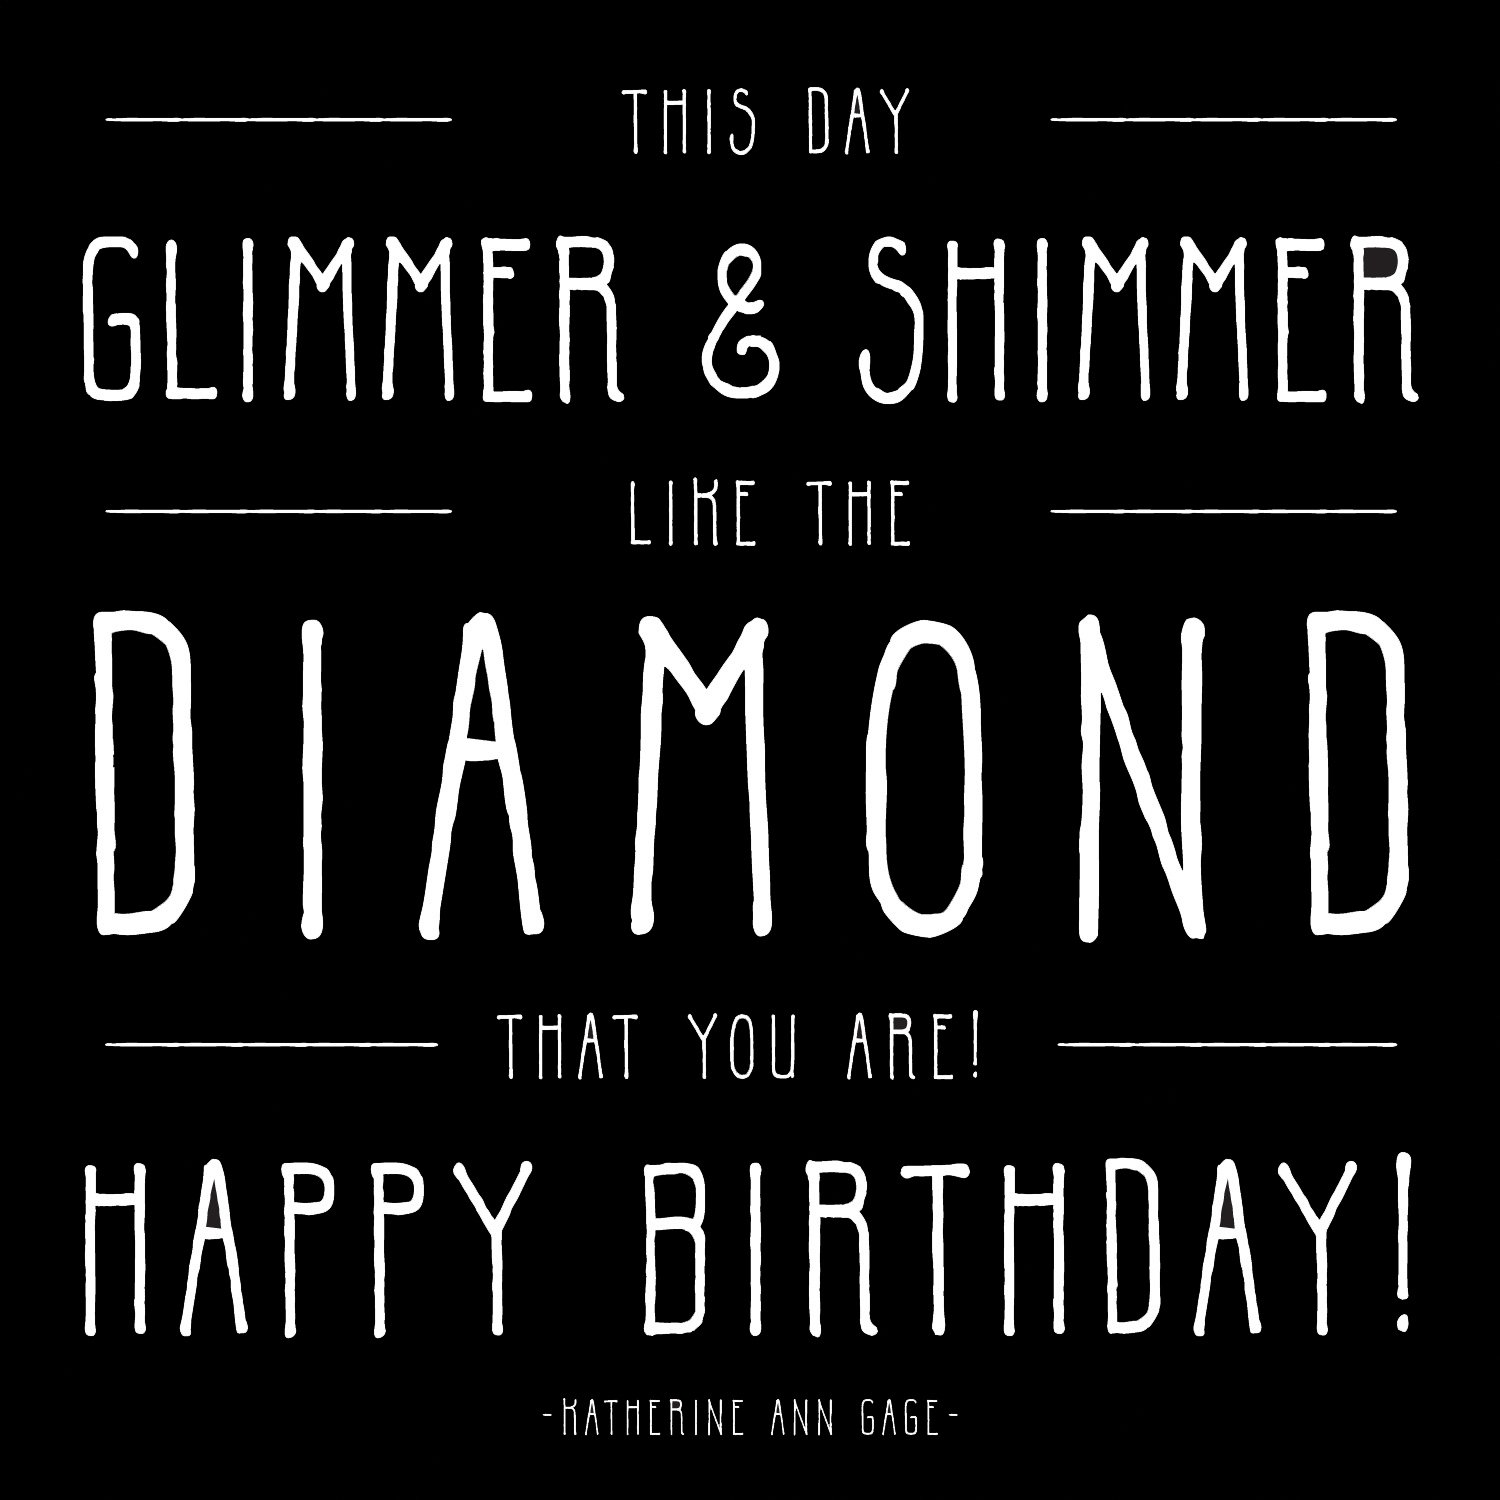 This Day Glimmer Shimmer Like The Diamond That You Are Happy – Quotable Cards Birthday